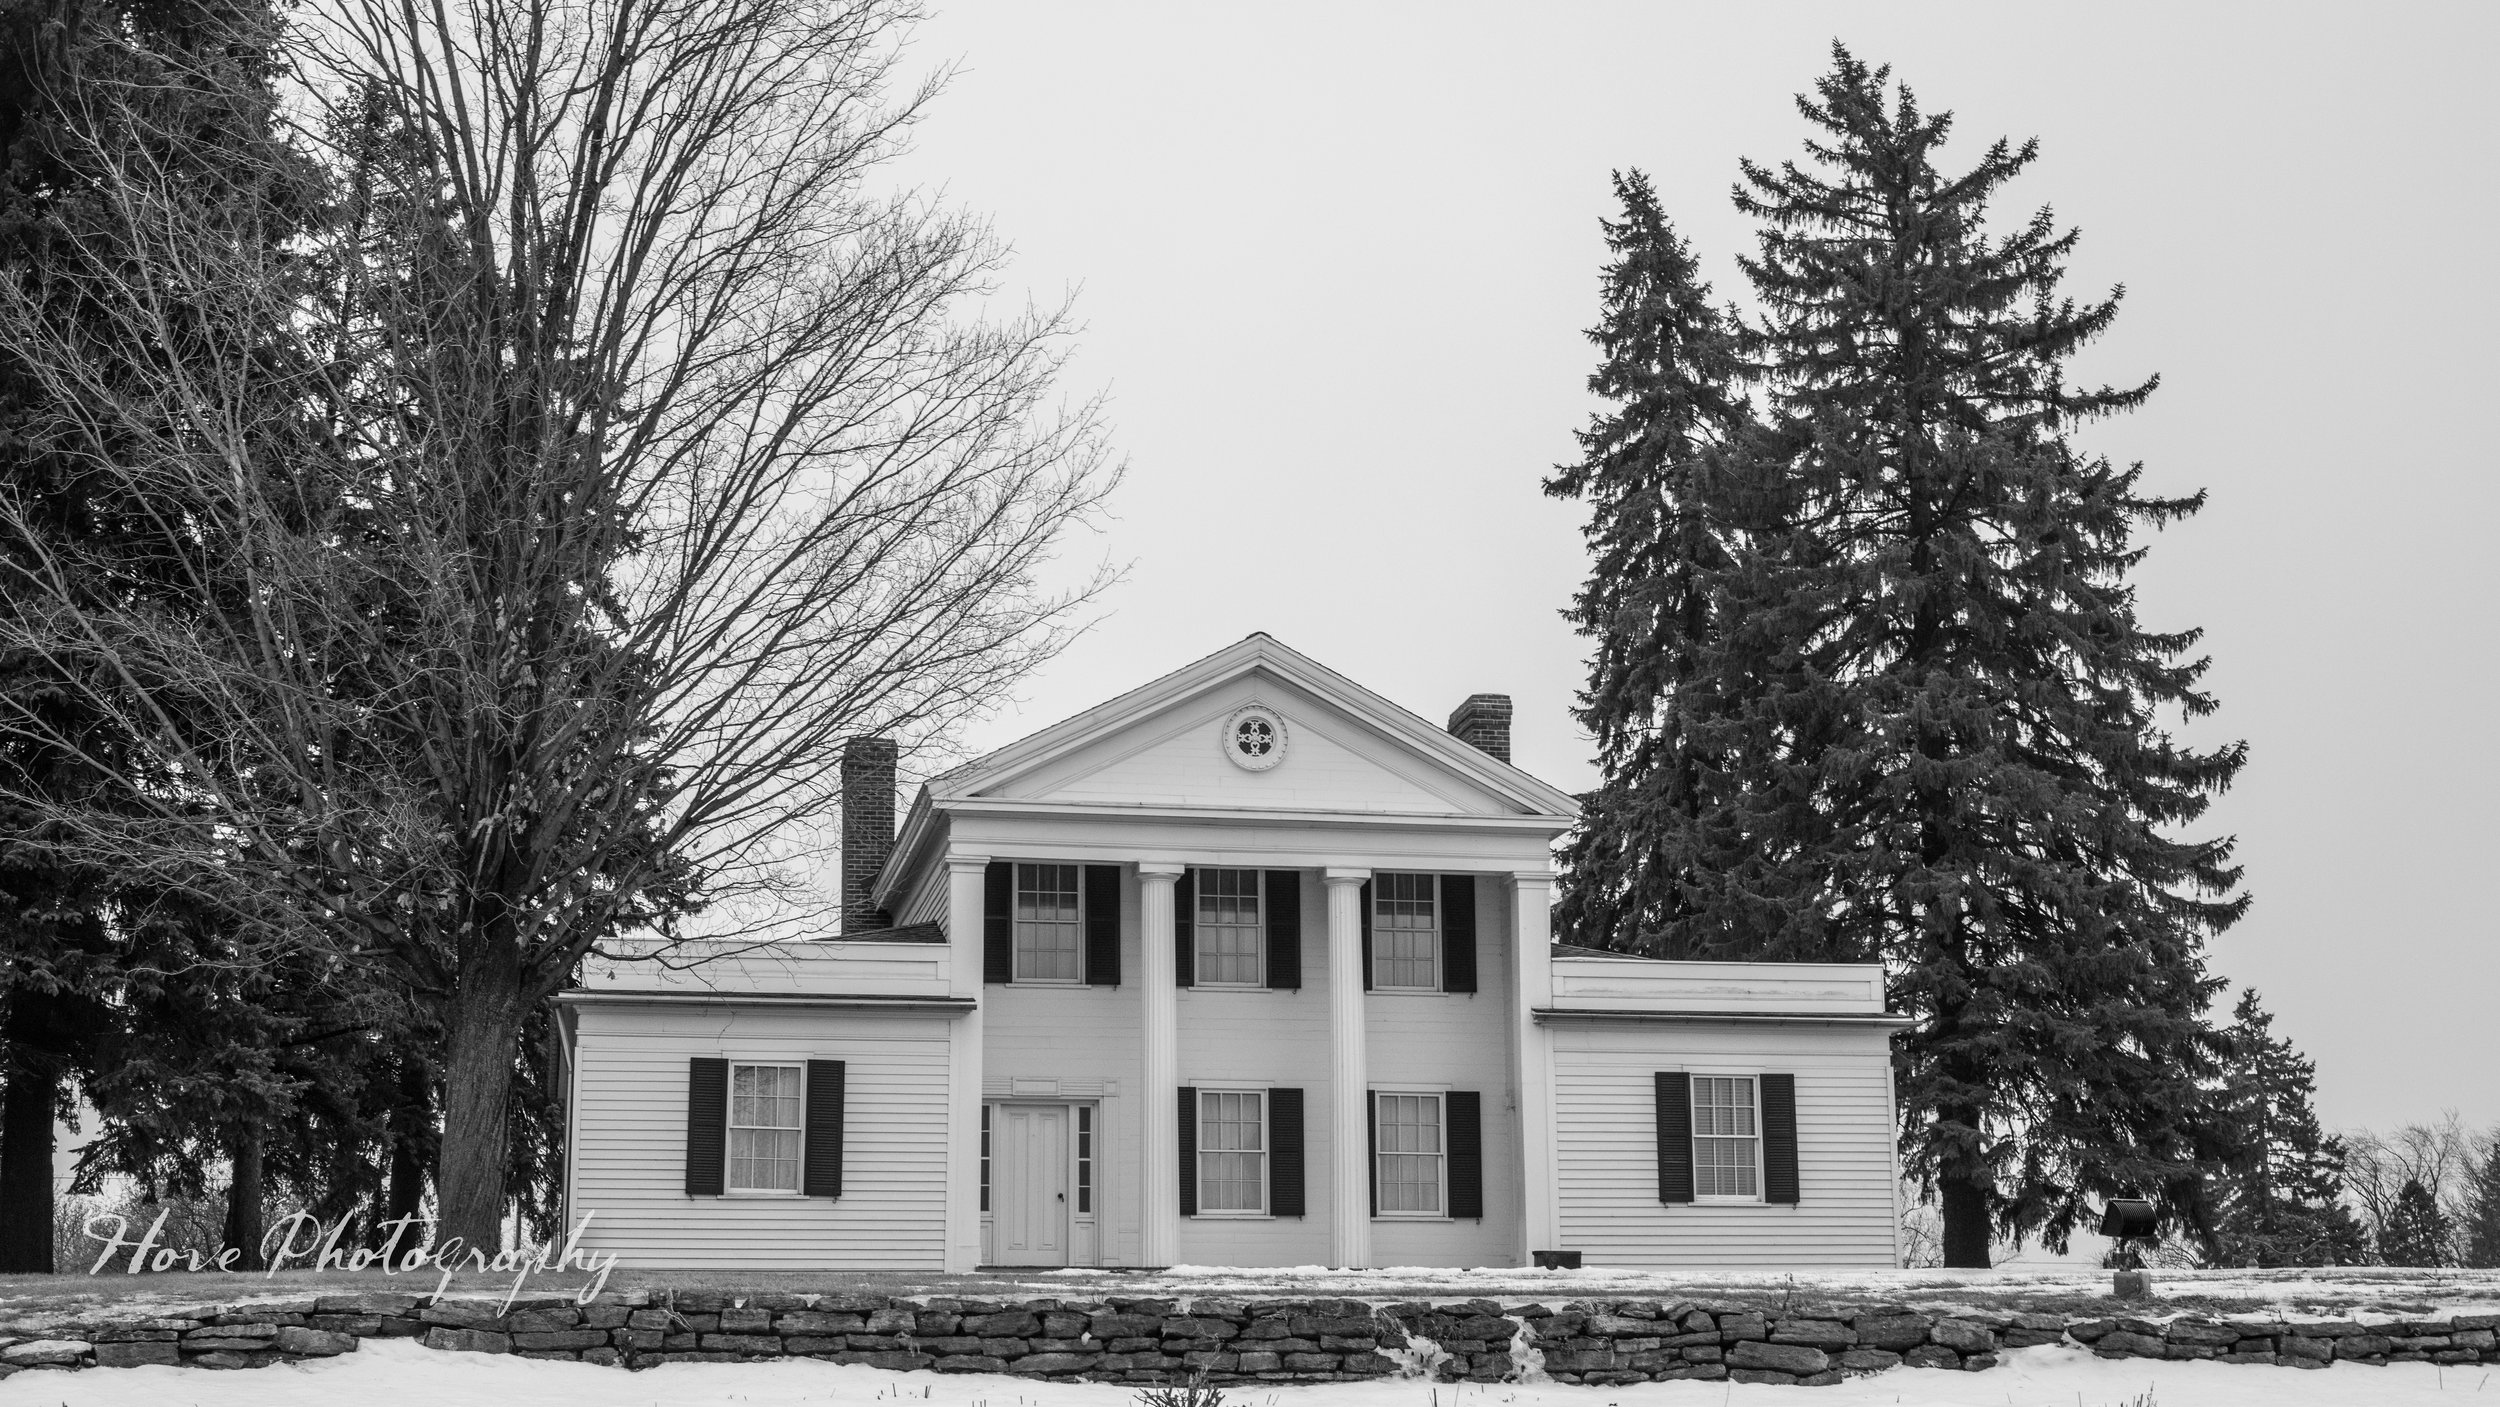 Heritage Hill: Green Bay, WI